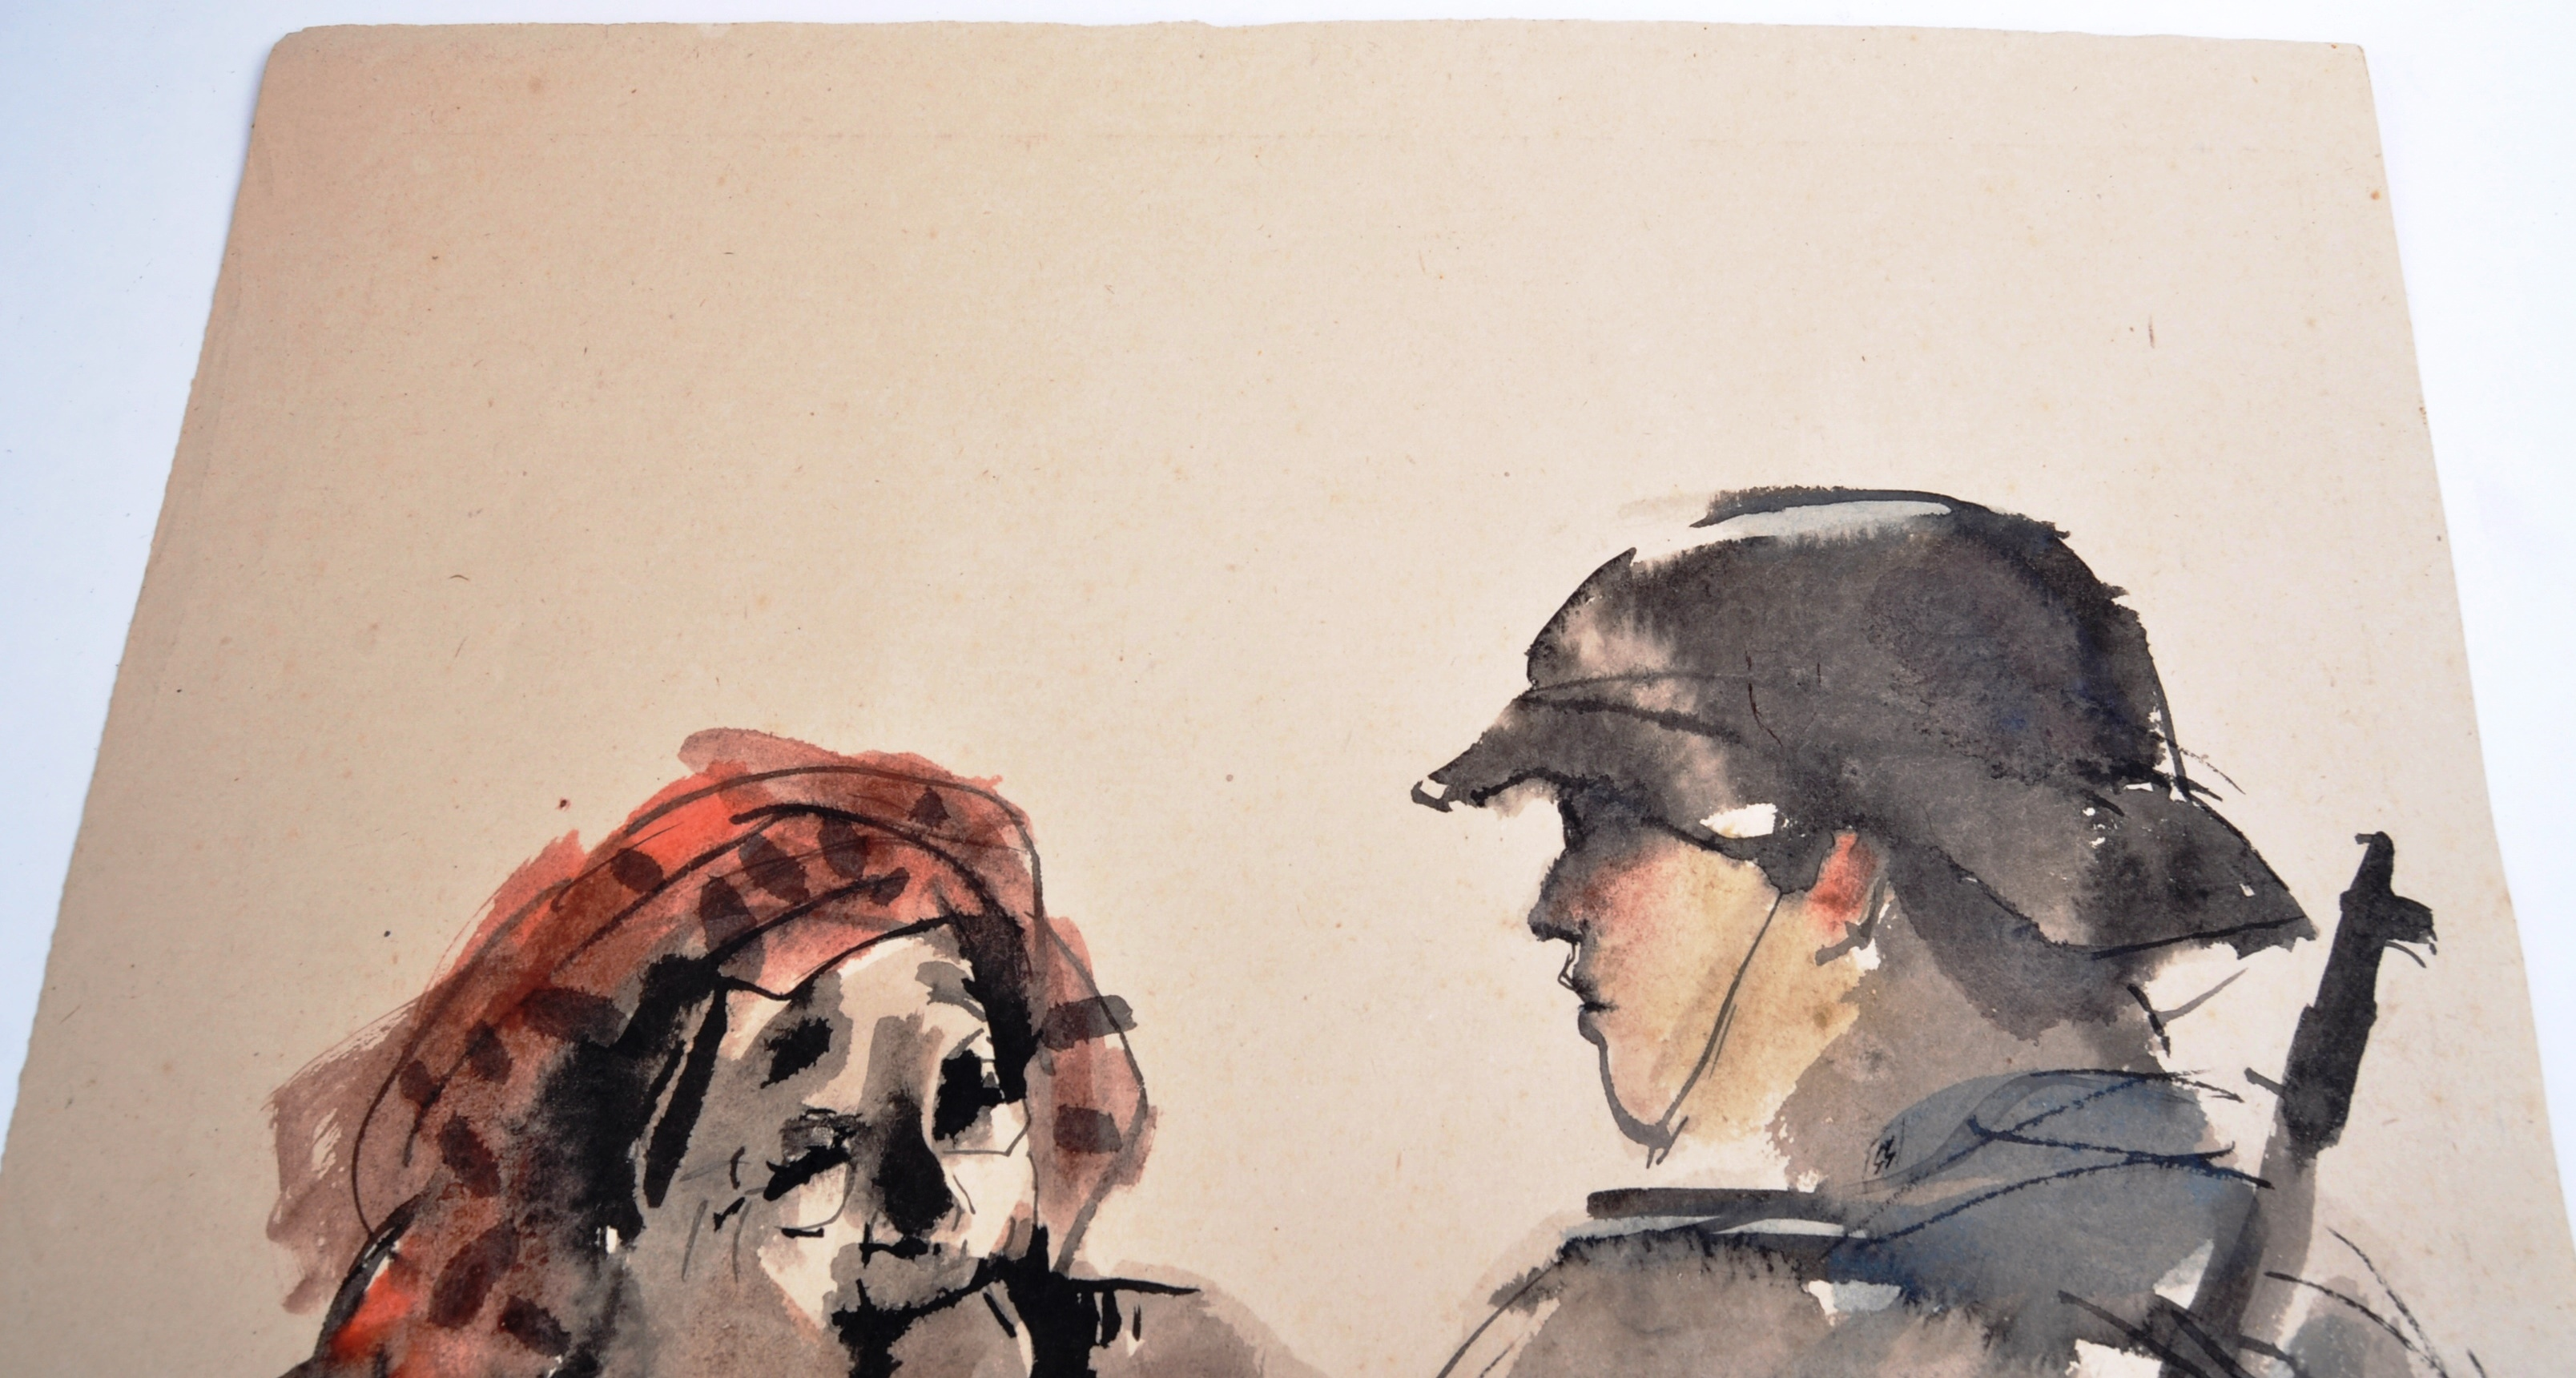 WWII SECOND WORLD WAR WATERCOLOUR PAINTING OF NAZI 1943 - Image 6 of 6